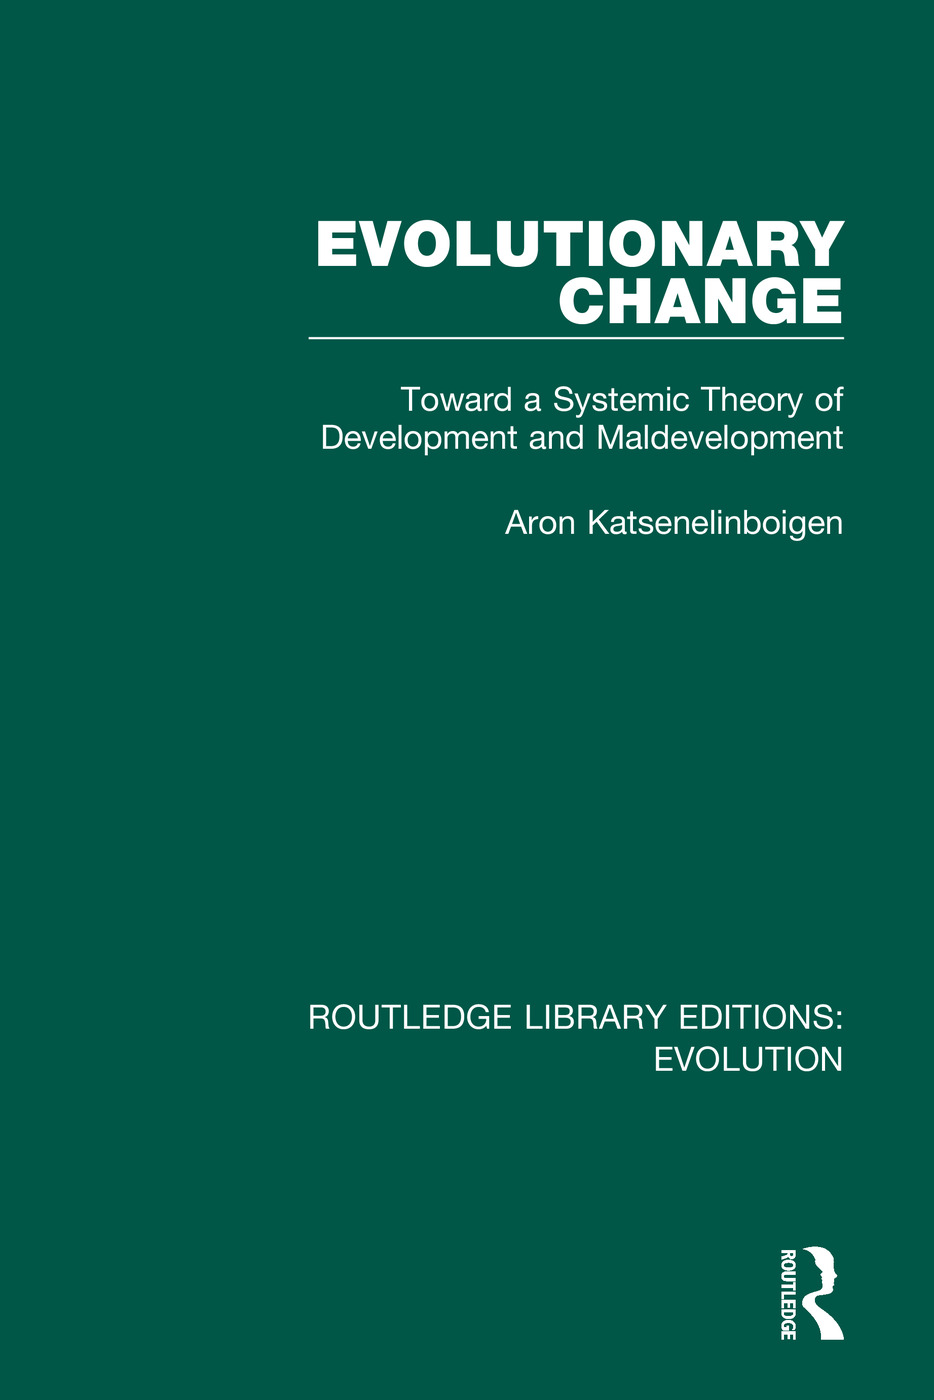 Evolutionary Change: Toward a Systemic Theory of Development and Maldevelopment book cover